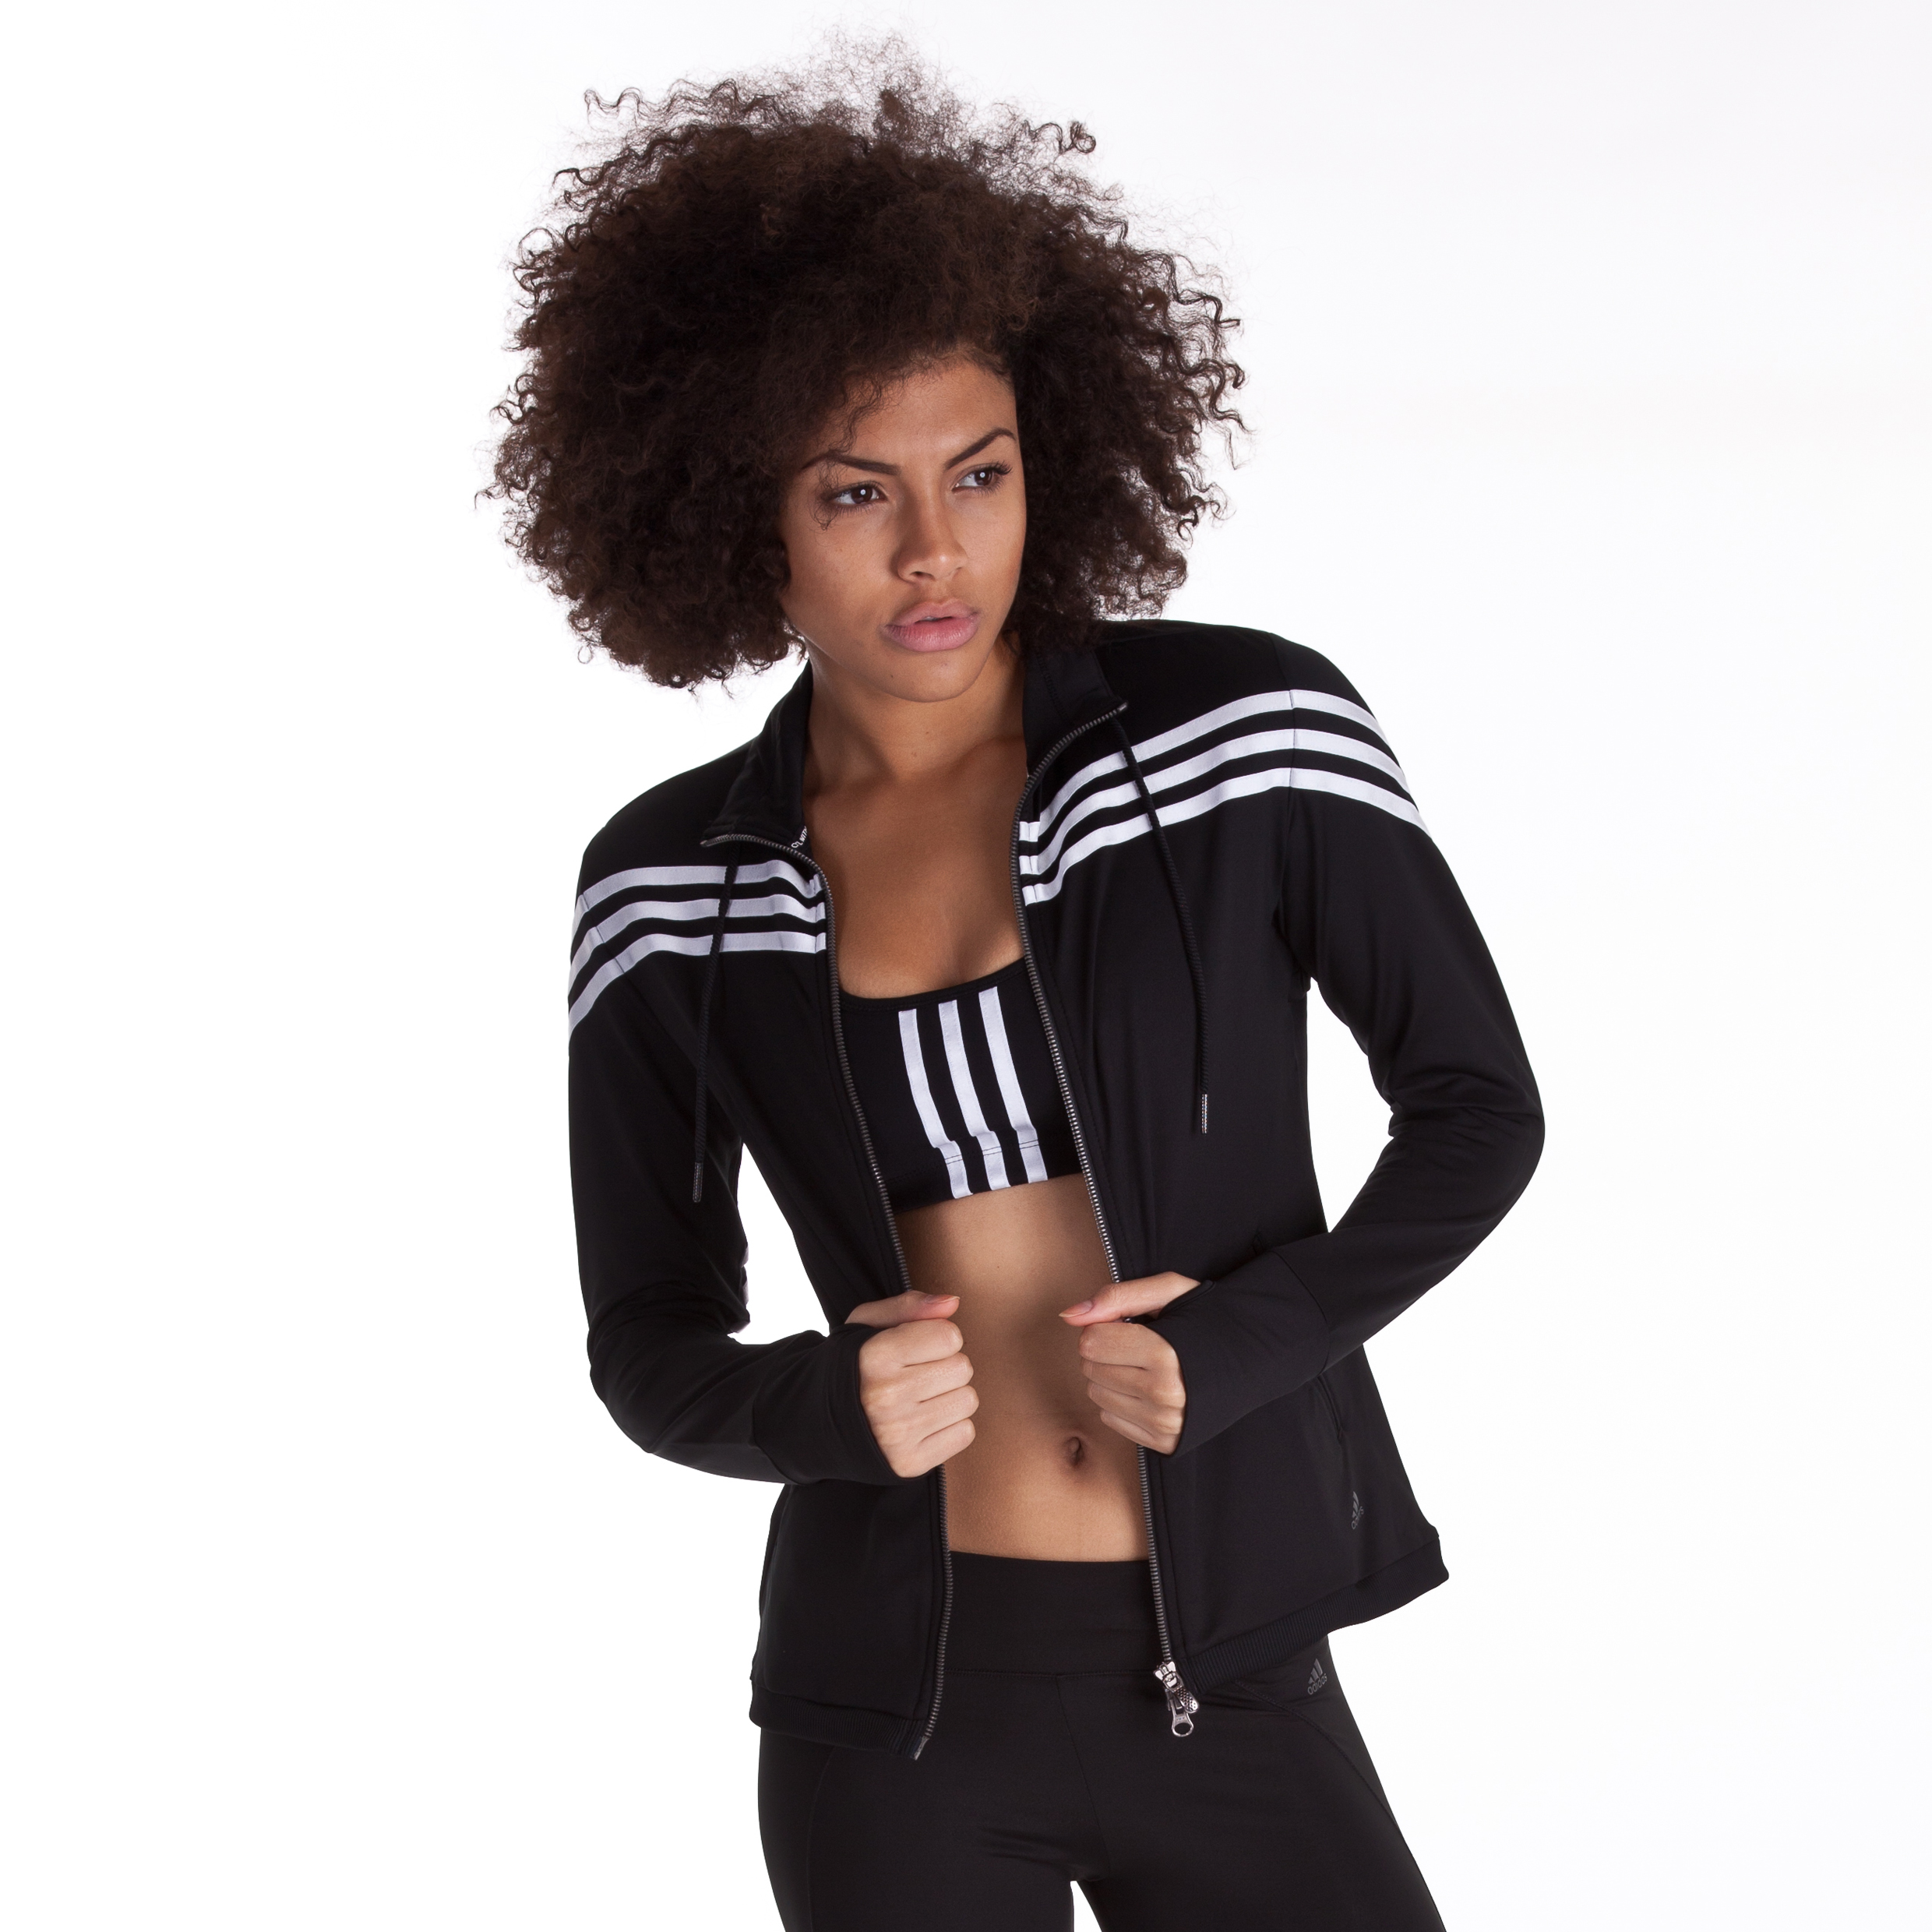 Adidas CLIMACOOL Training 3 Stripe Track Top - Black/White - Womens